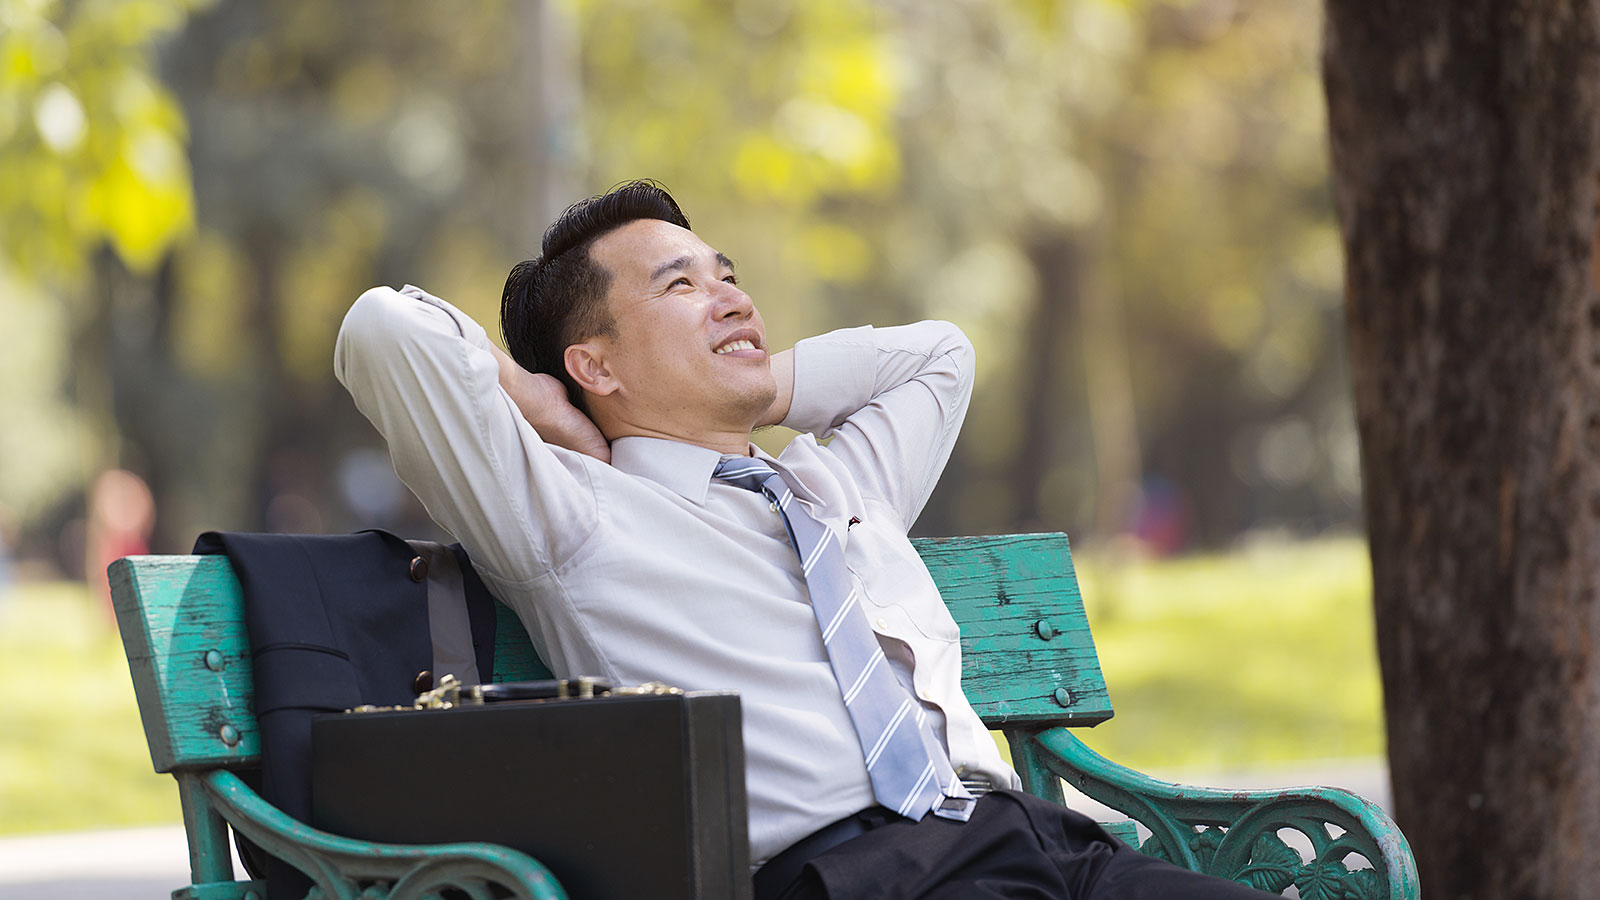 The power of taking a break at work